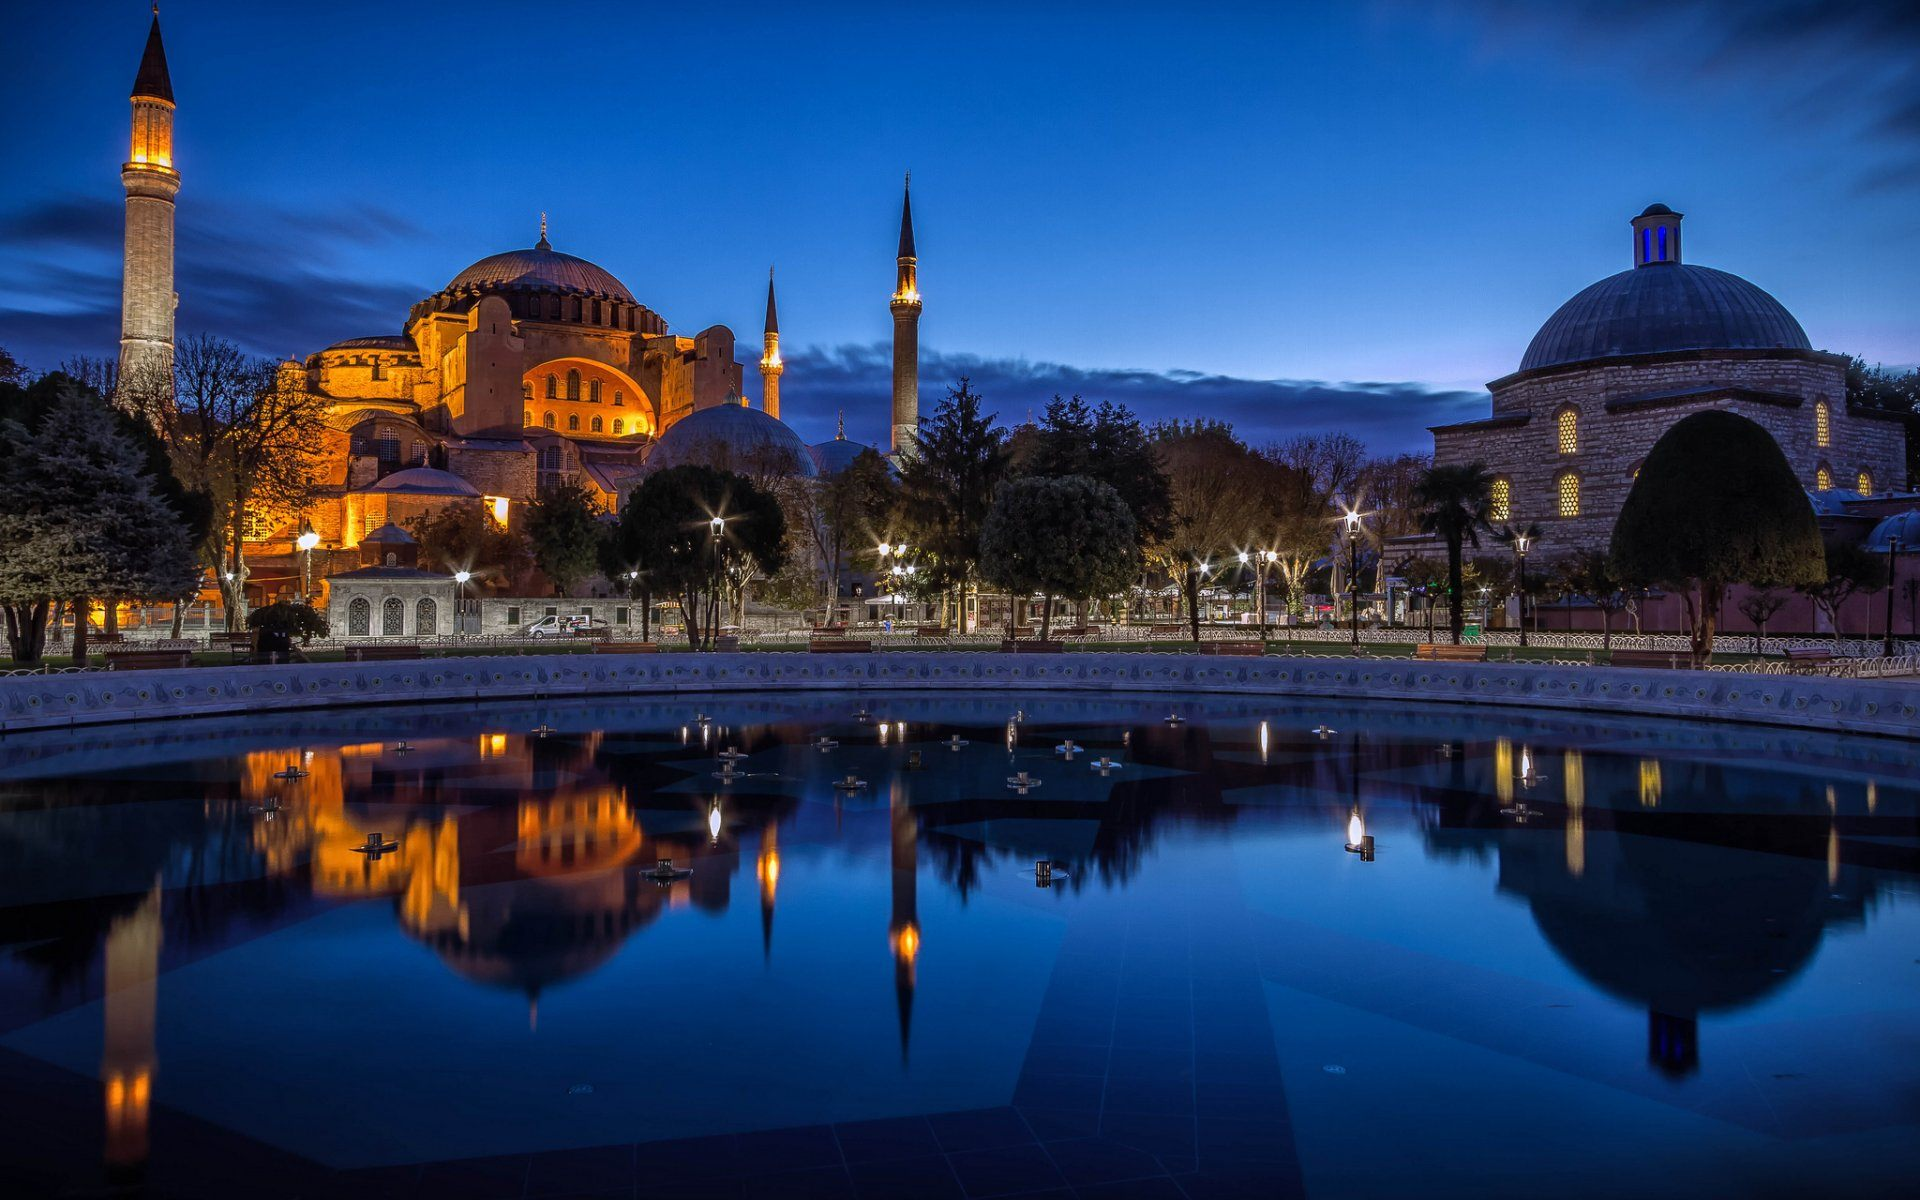 Aya Sophia Turkey Wallpaper HD For Desktop in High Quality